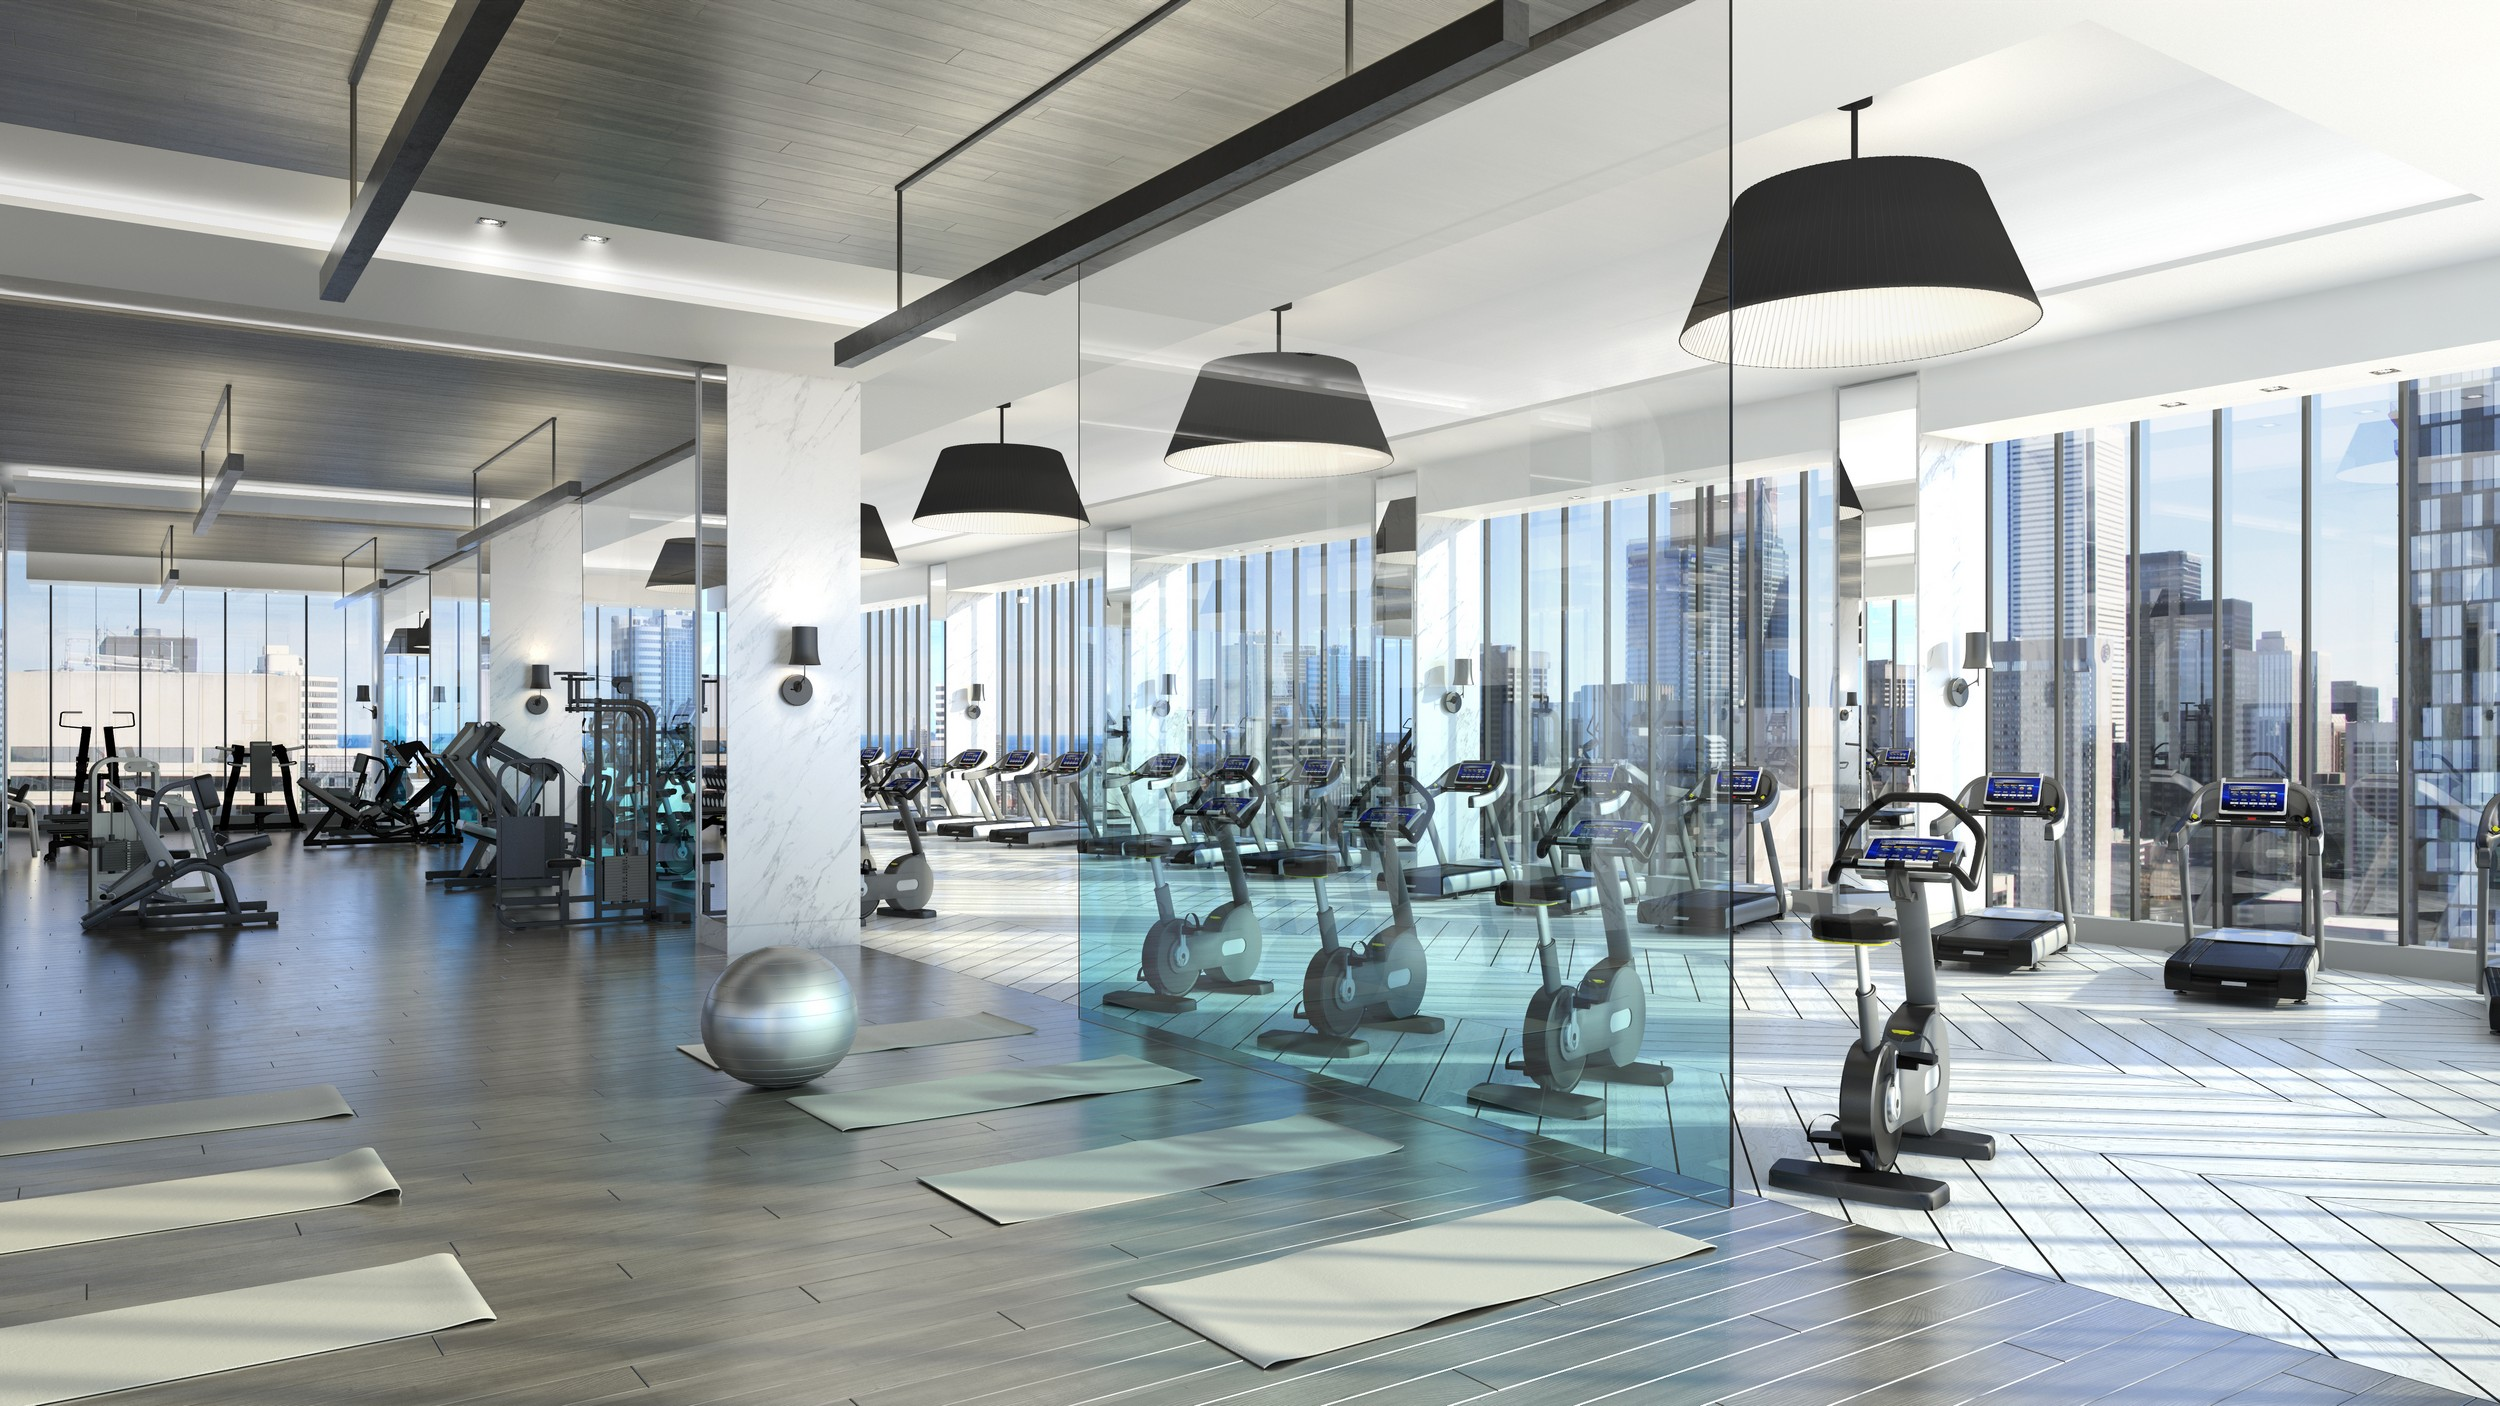 3d image of gym with exercise bikes, ball and yoga mats at The Residences of 488 University Avenue.